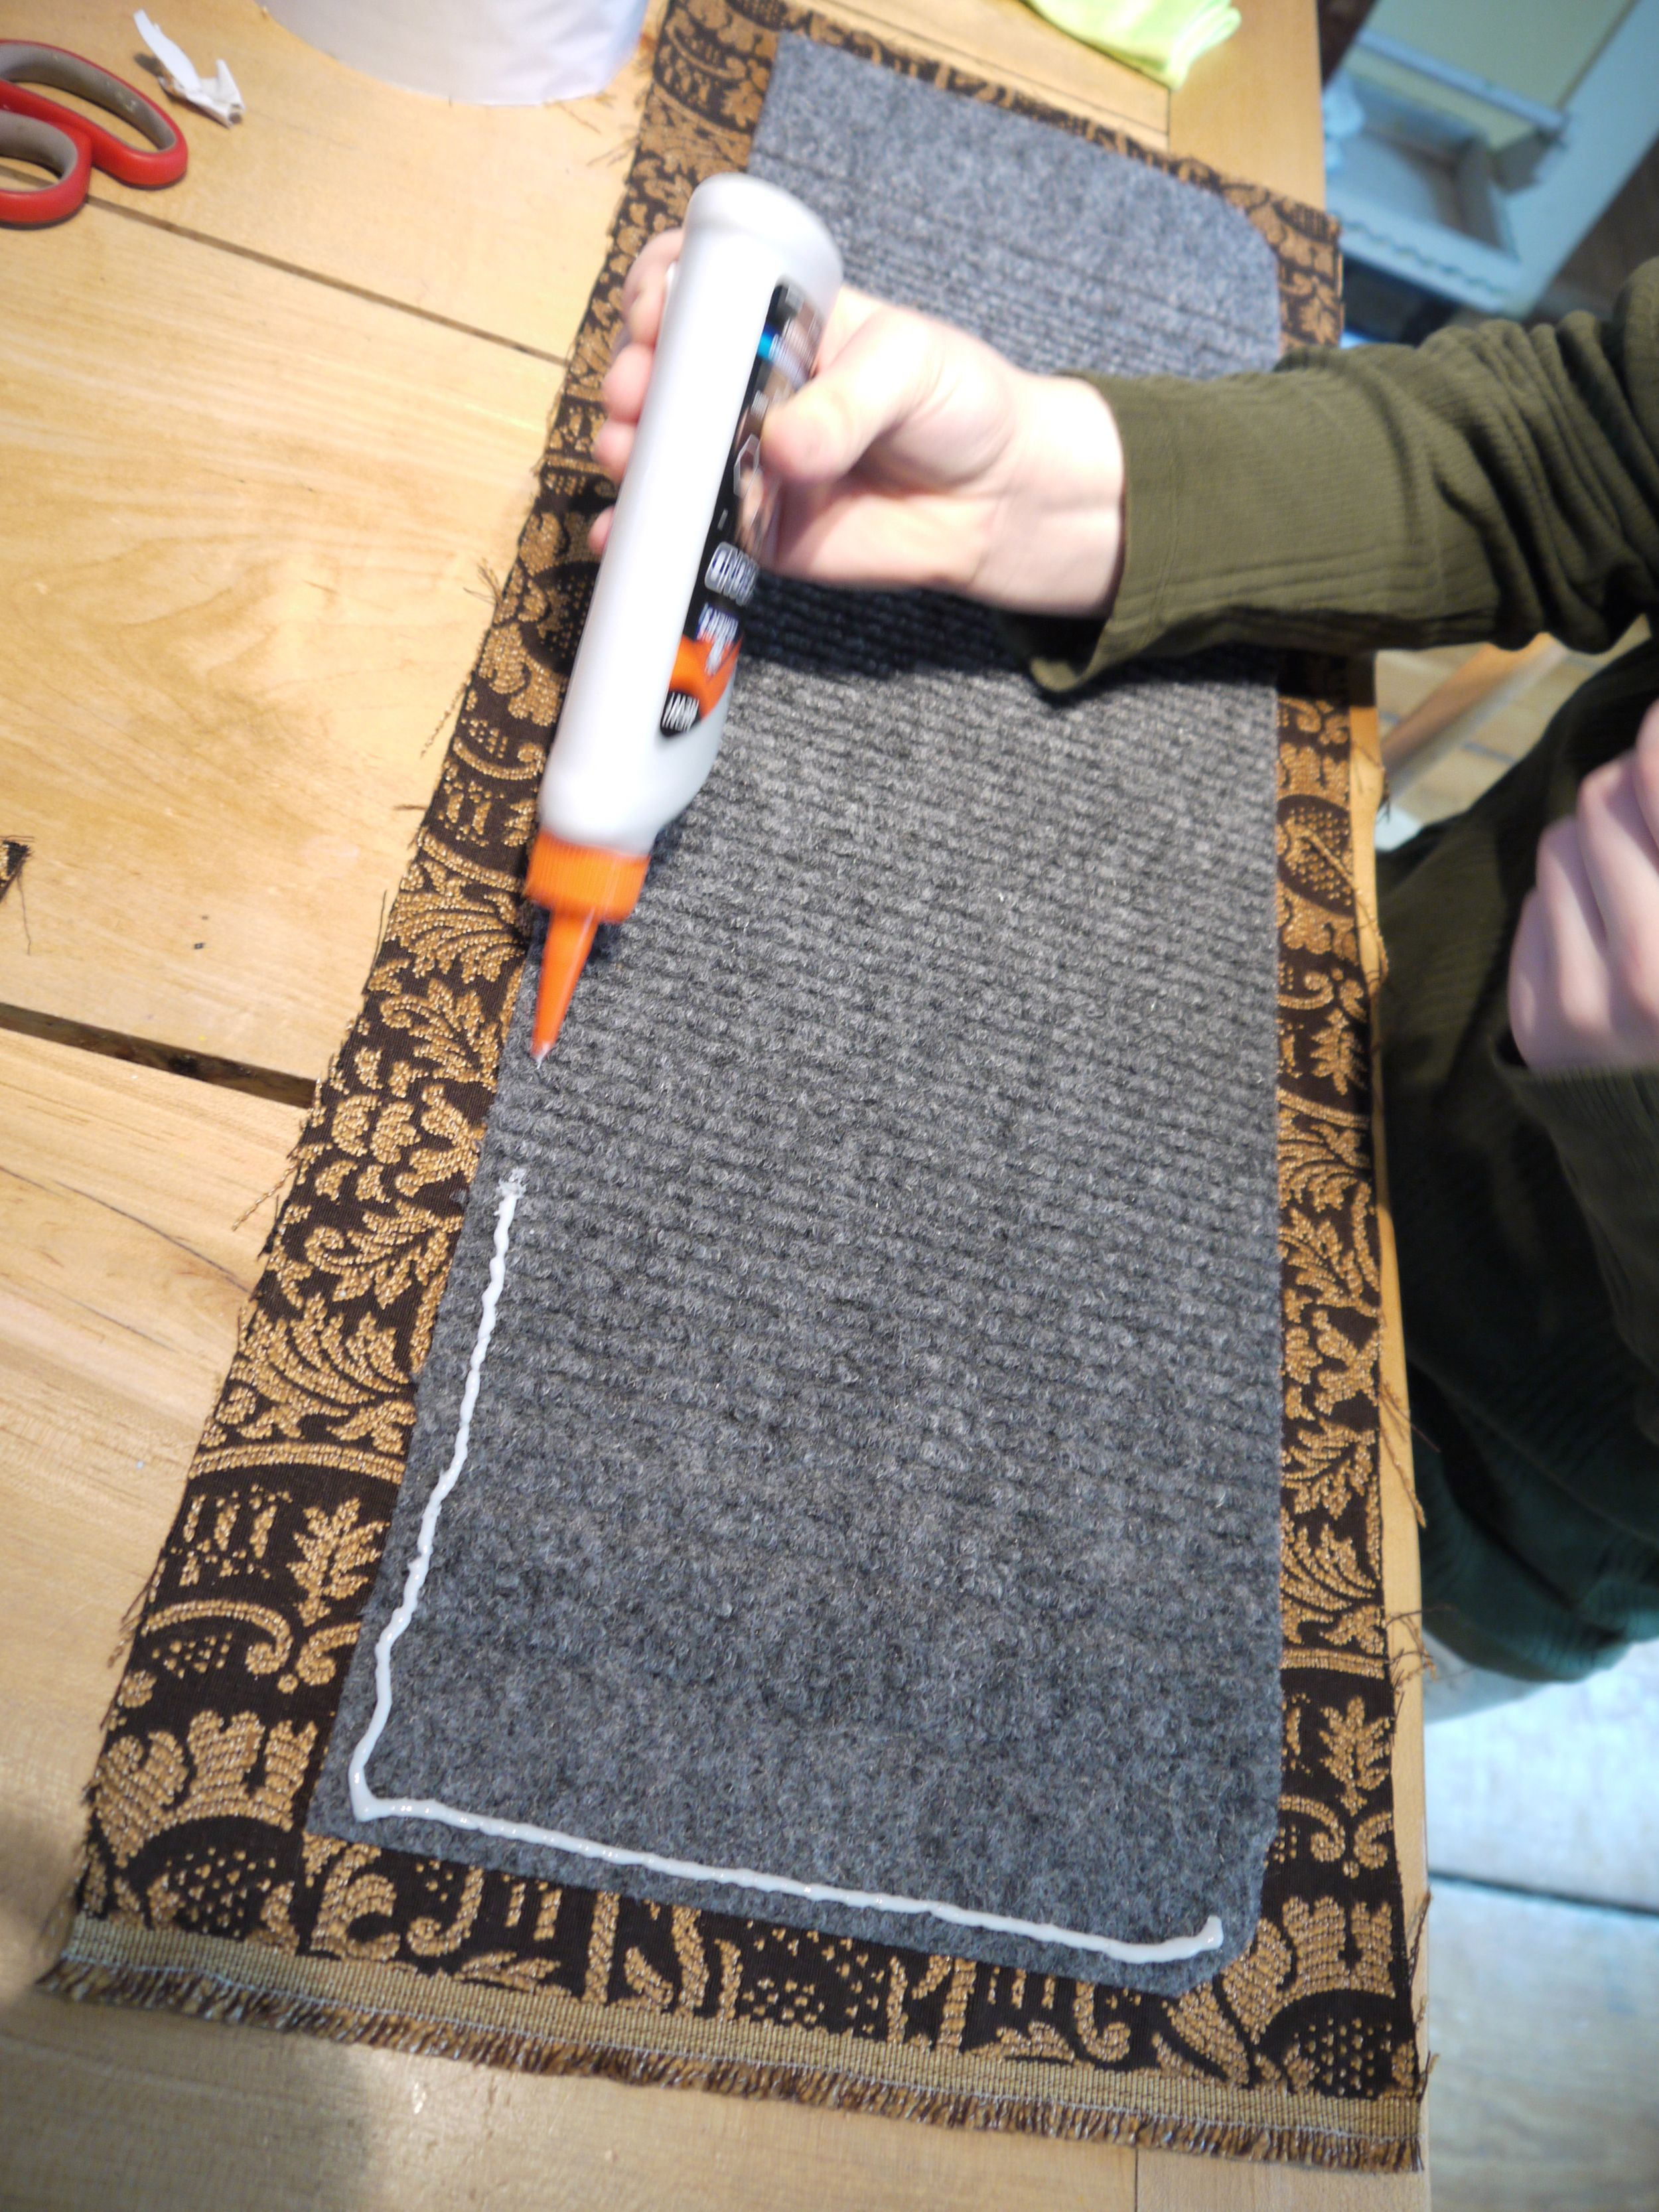 Make Your Own Carpet Stair Treads — Because L I A D A Carpet | Home Depot Carpet Treads | Ottomanson Softy | Tread Covers | Rugs | Staircase | Stairs